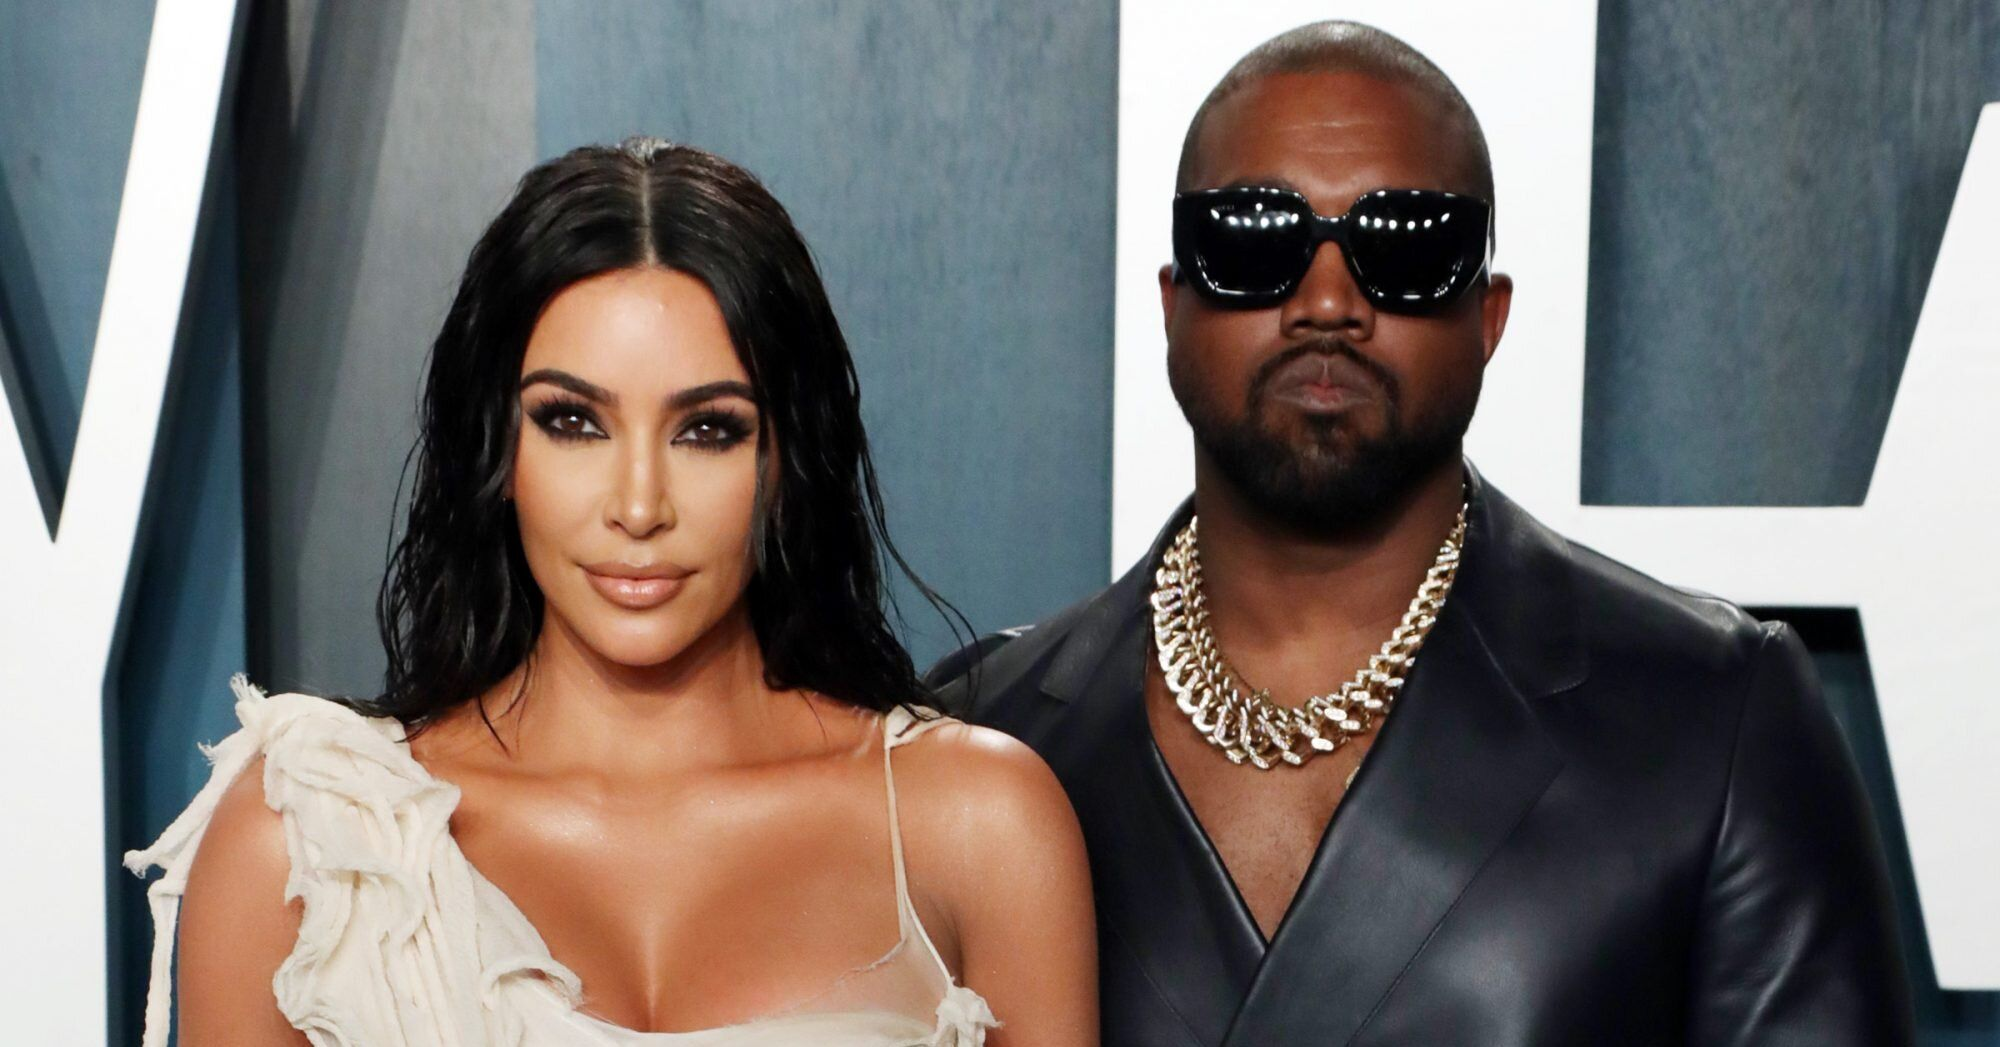 Kanye West And Kim Kardashian Have Been Considering Divorce For A Long Time Sources Say In 2020 Kim Kardashian And Kanye Kanye West Kanye West And Kim